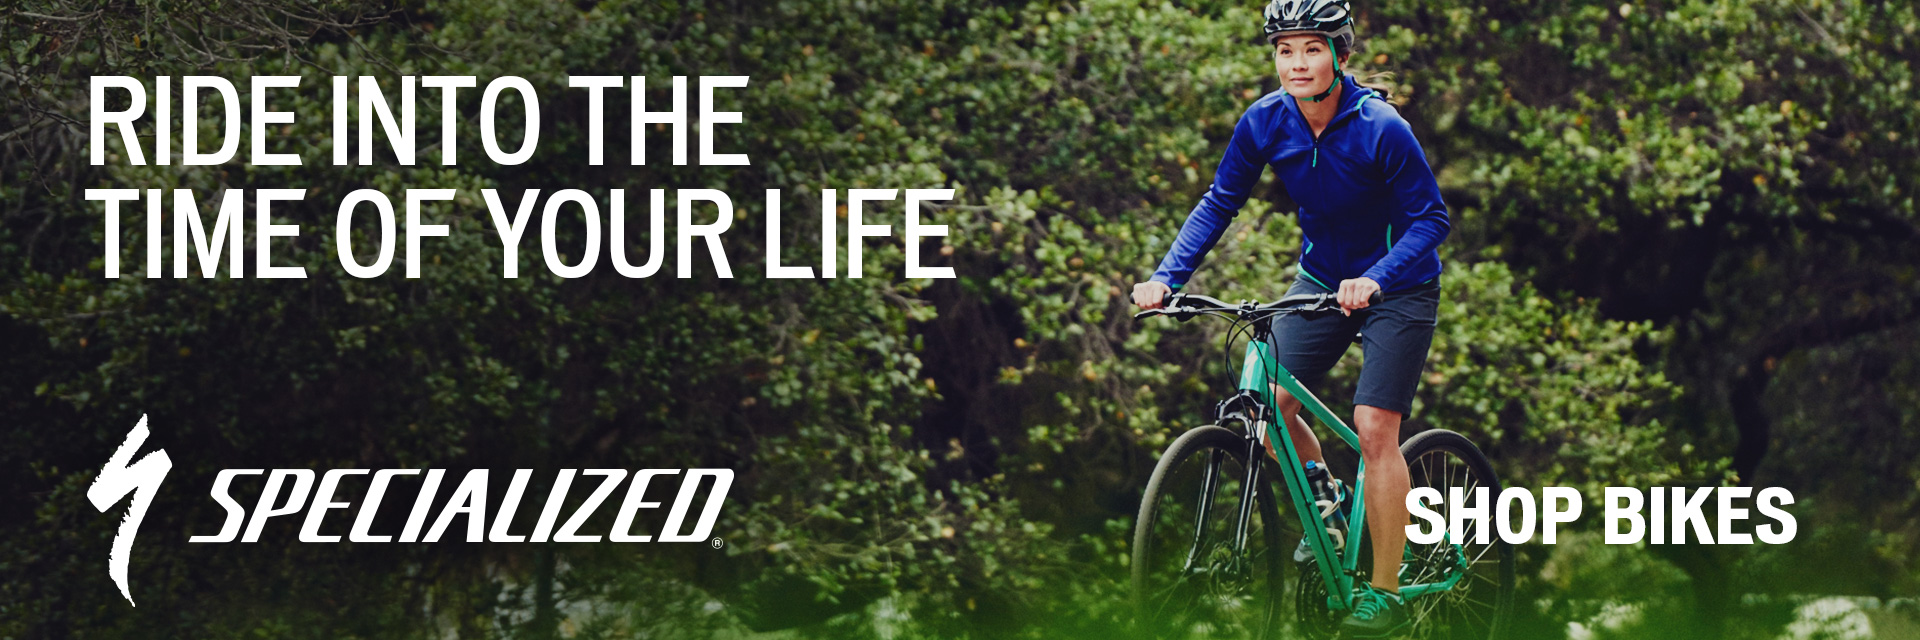 Shop Specialized Bikes & Gear